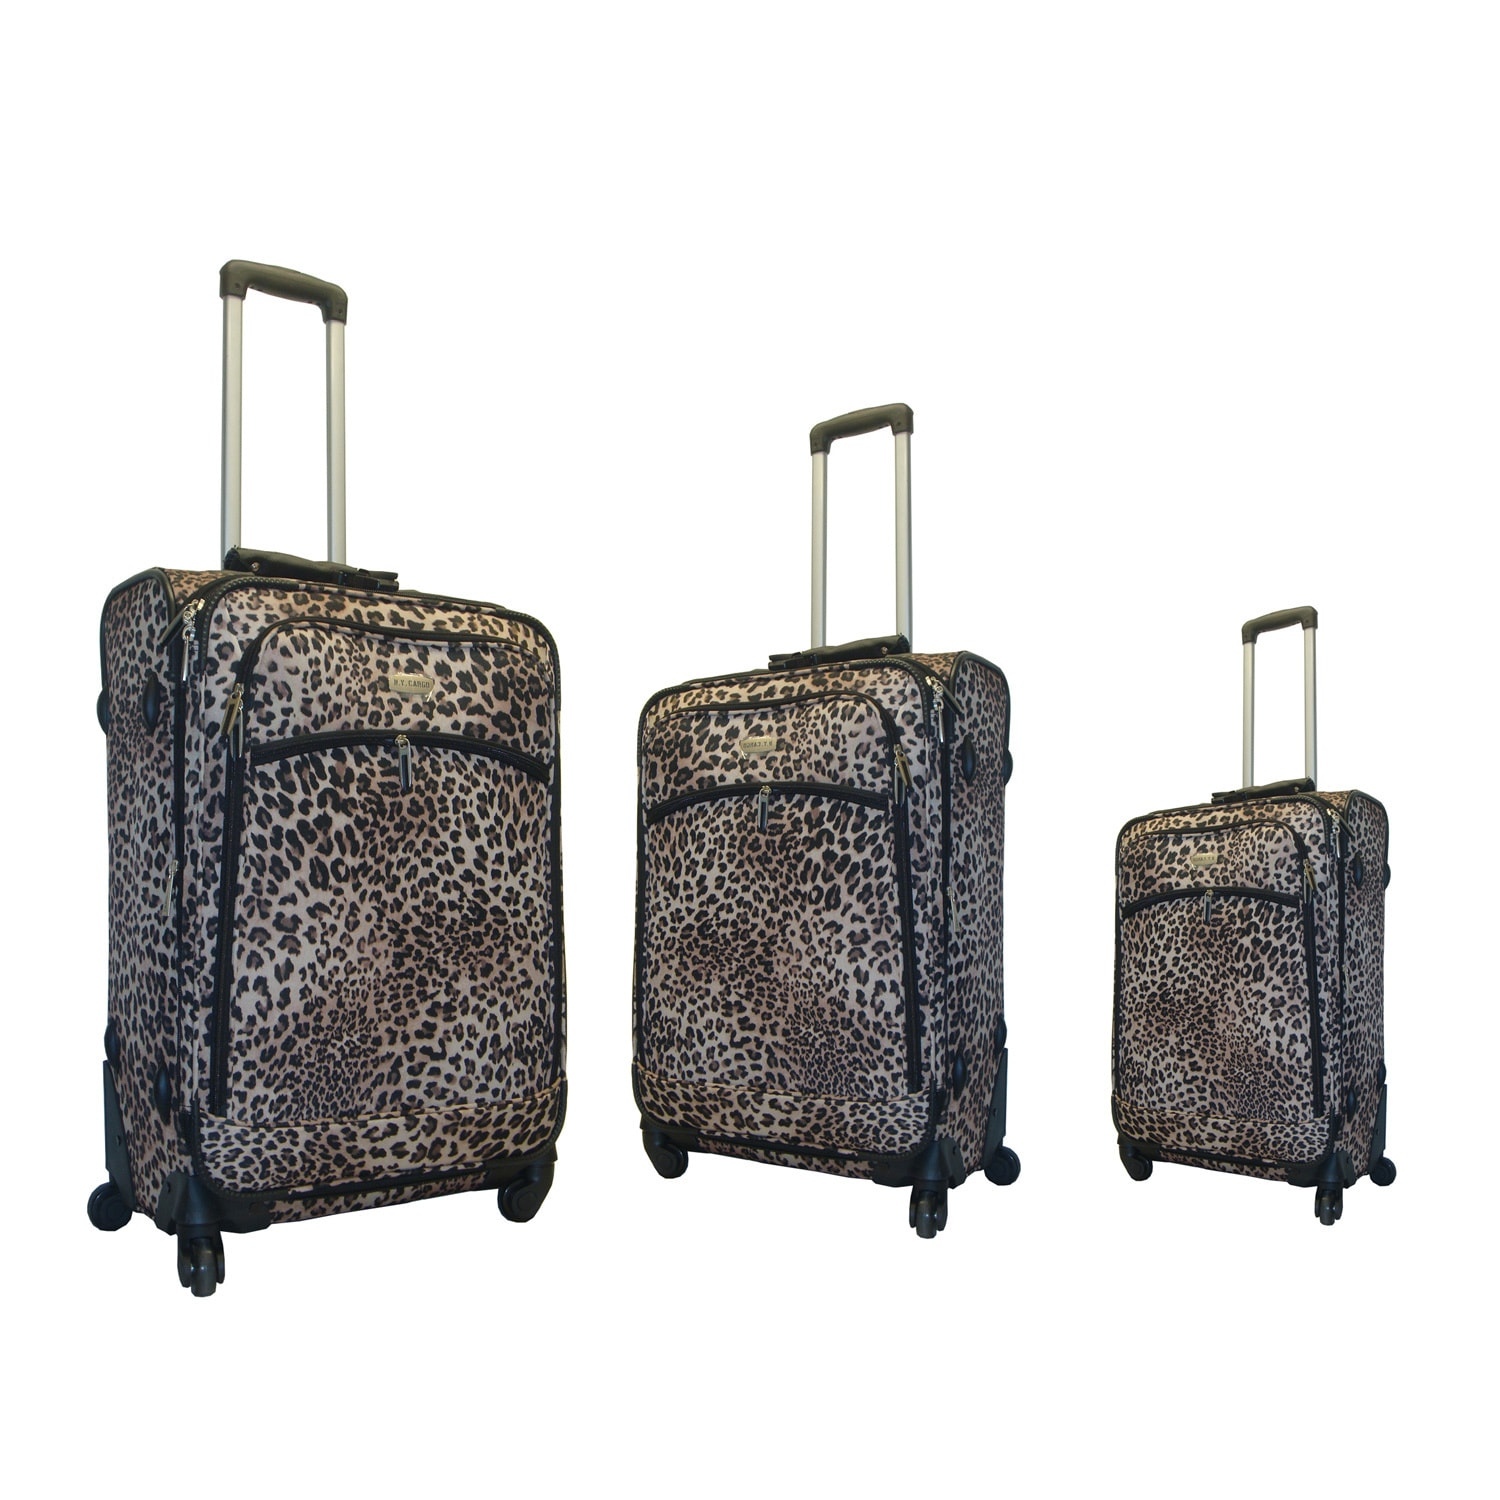 NY Cargo Safari 3-piece Spinner Luggage Set